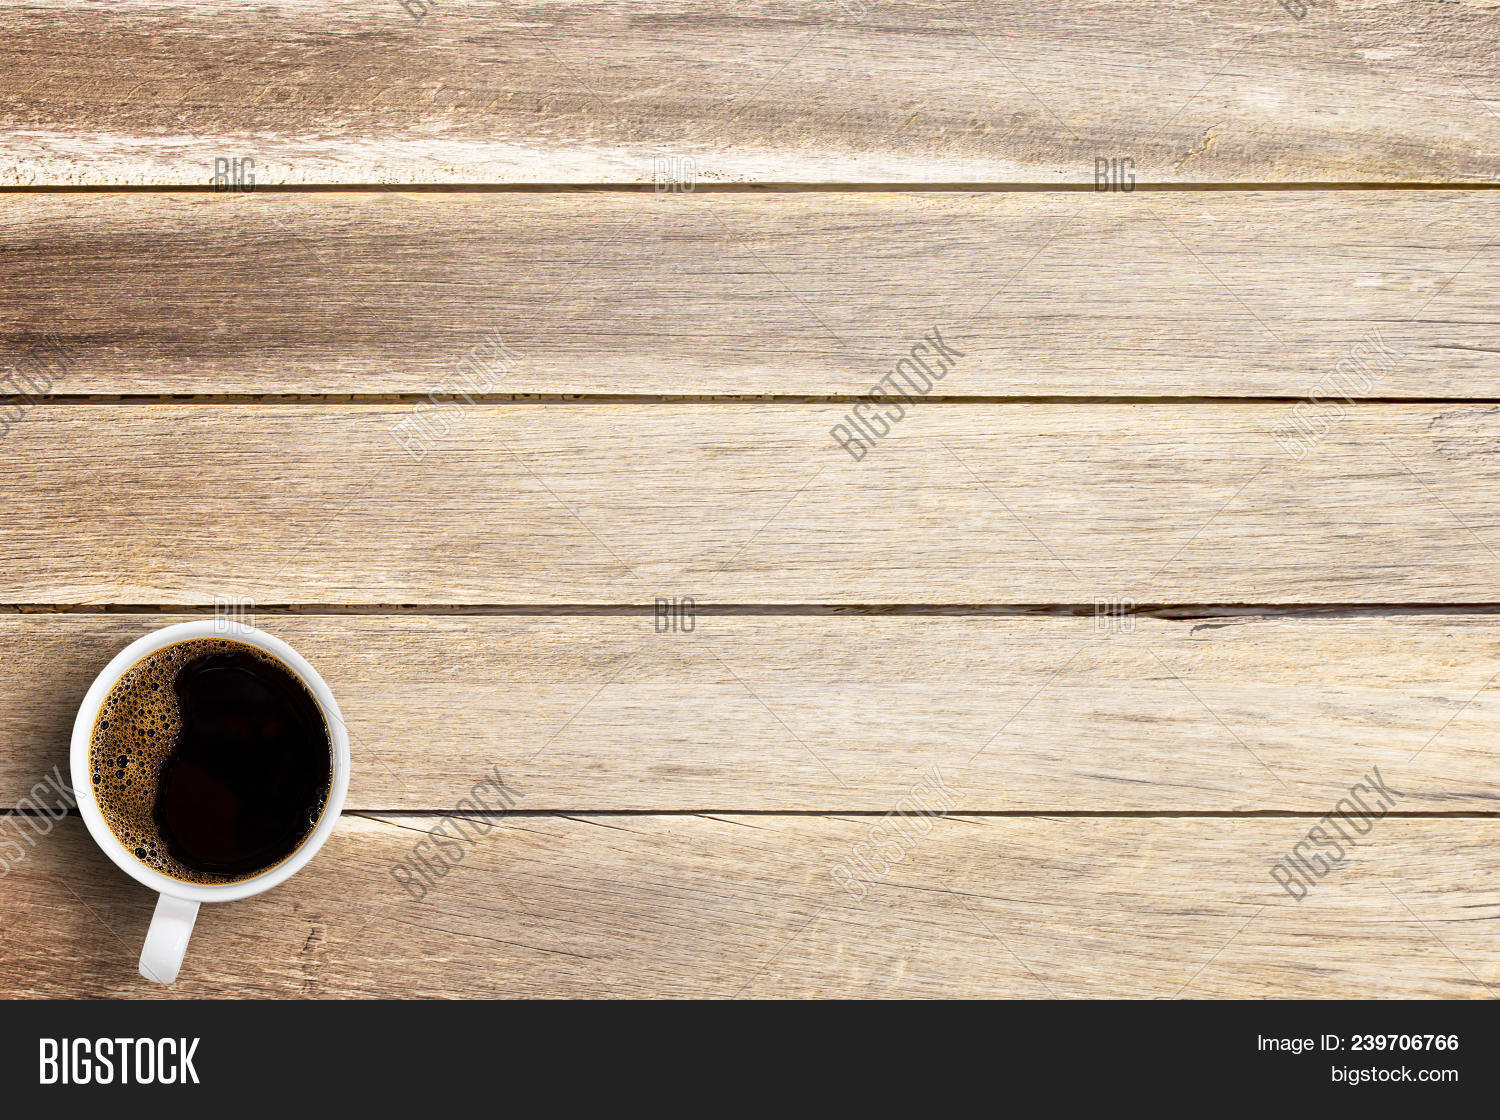 cup coffee on office image photo